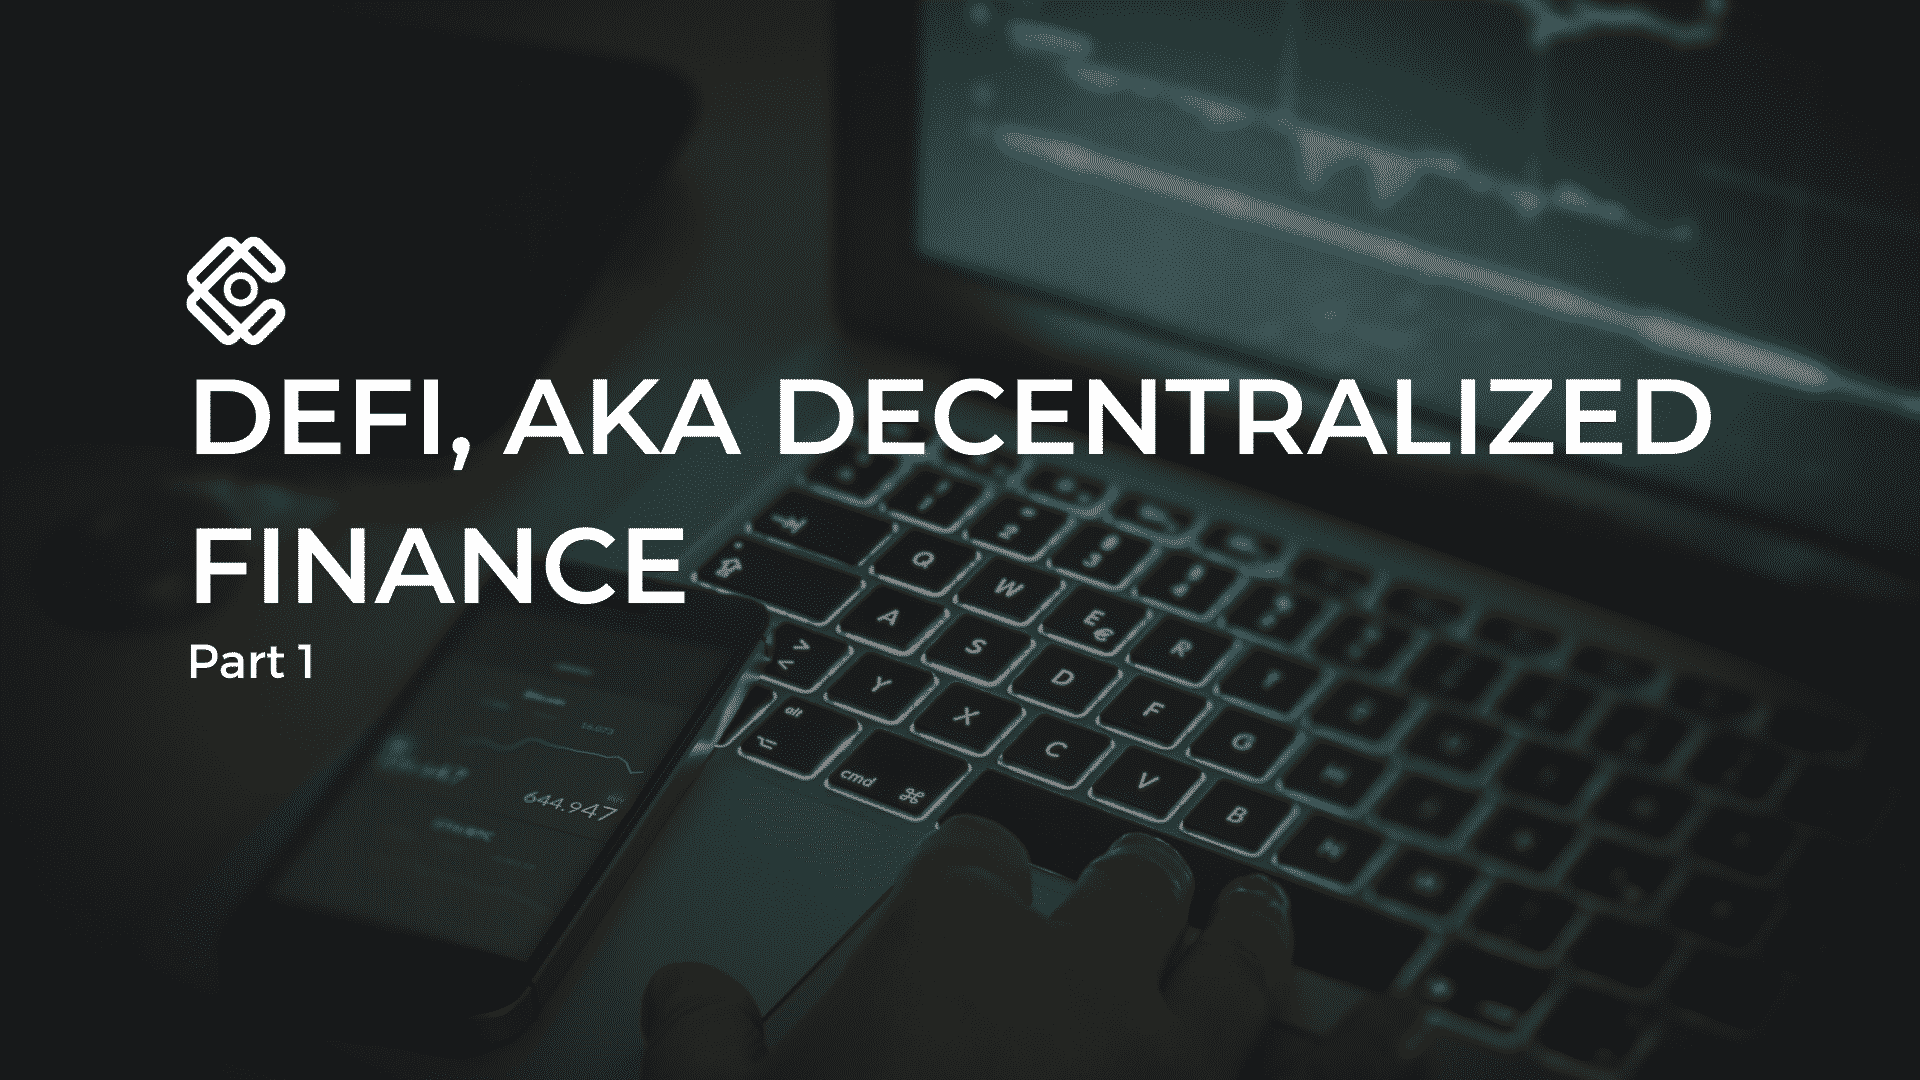 DeFi, aka Decentralized Finance. Part 1